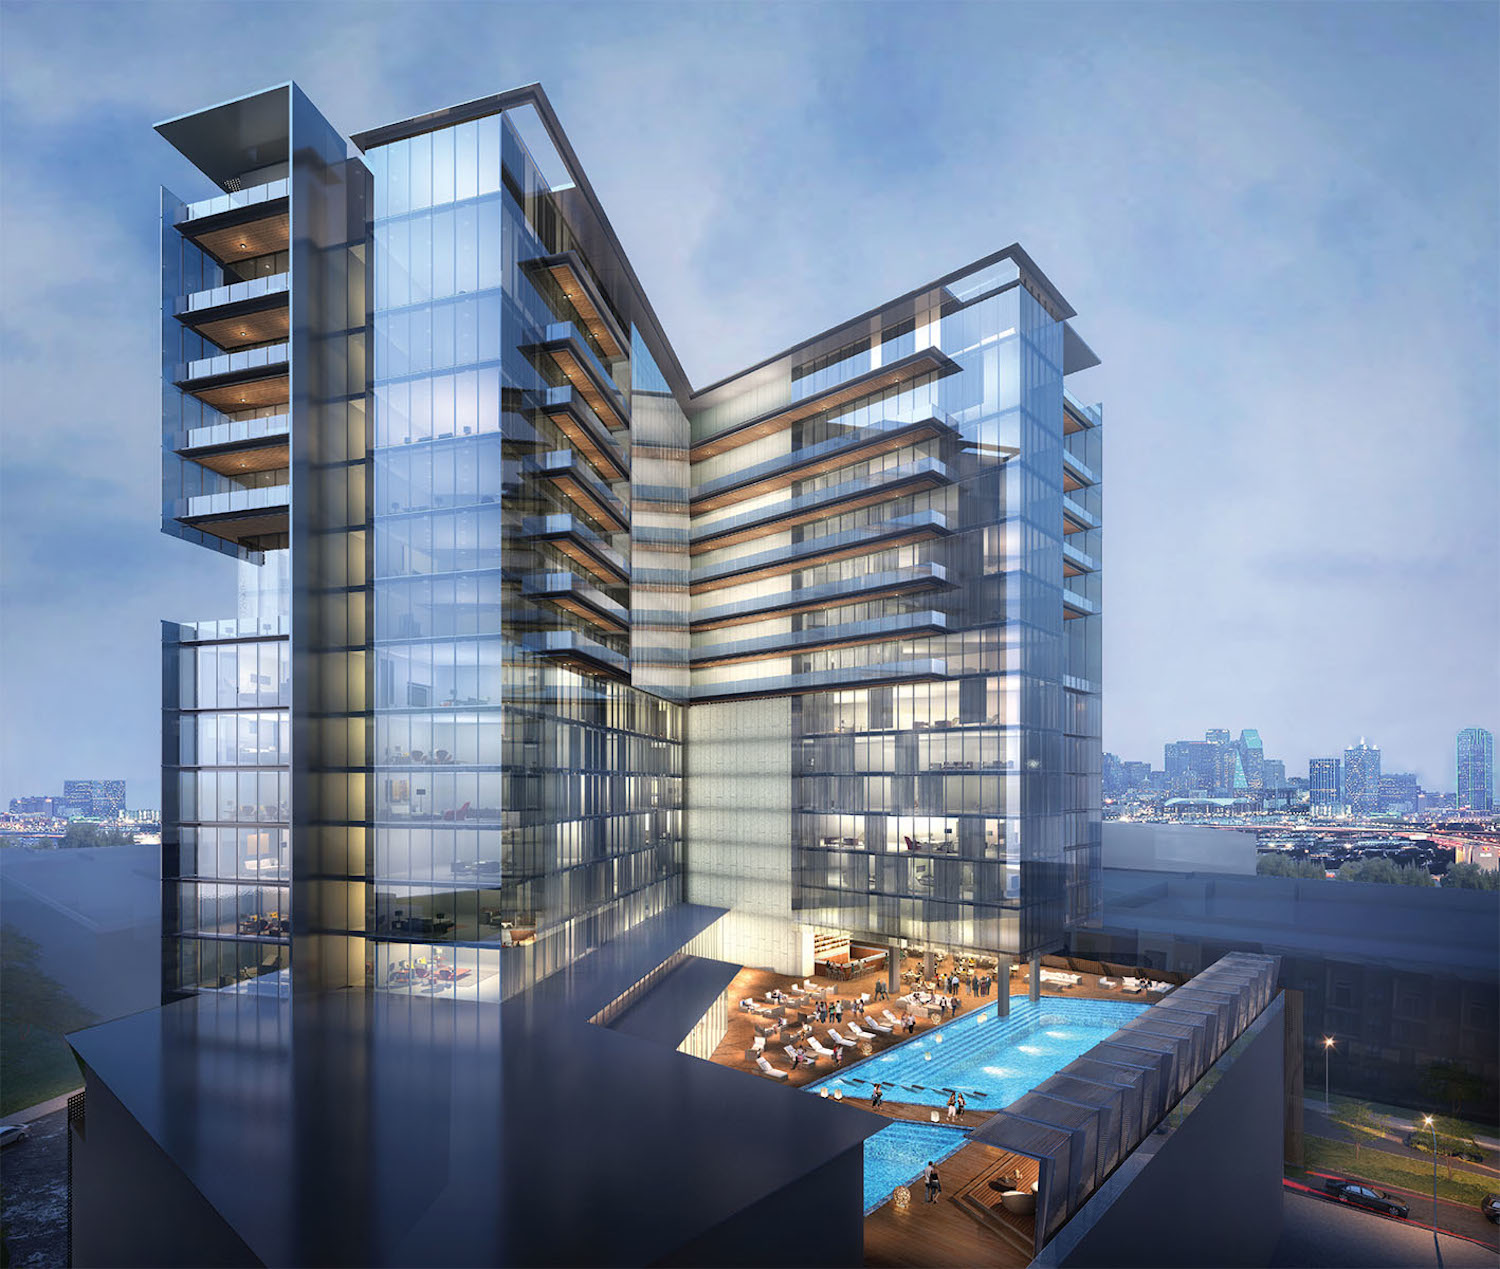 Development starts on the virgin hotels dallas hotel - Hotel design planning and development ebook ...